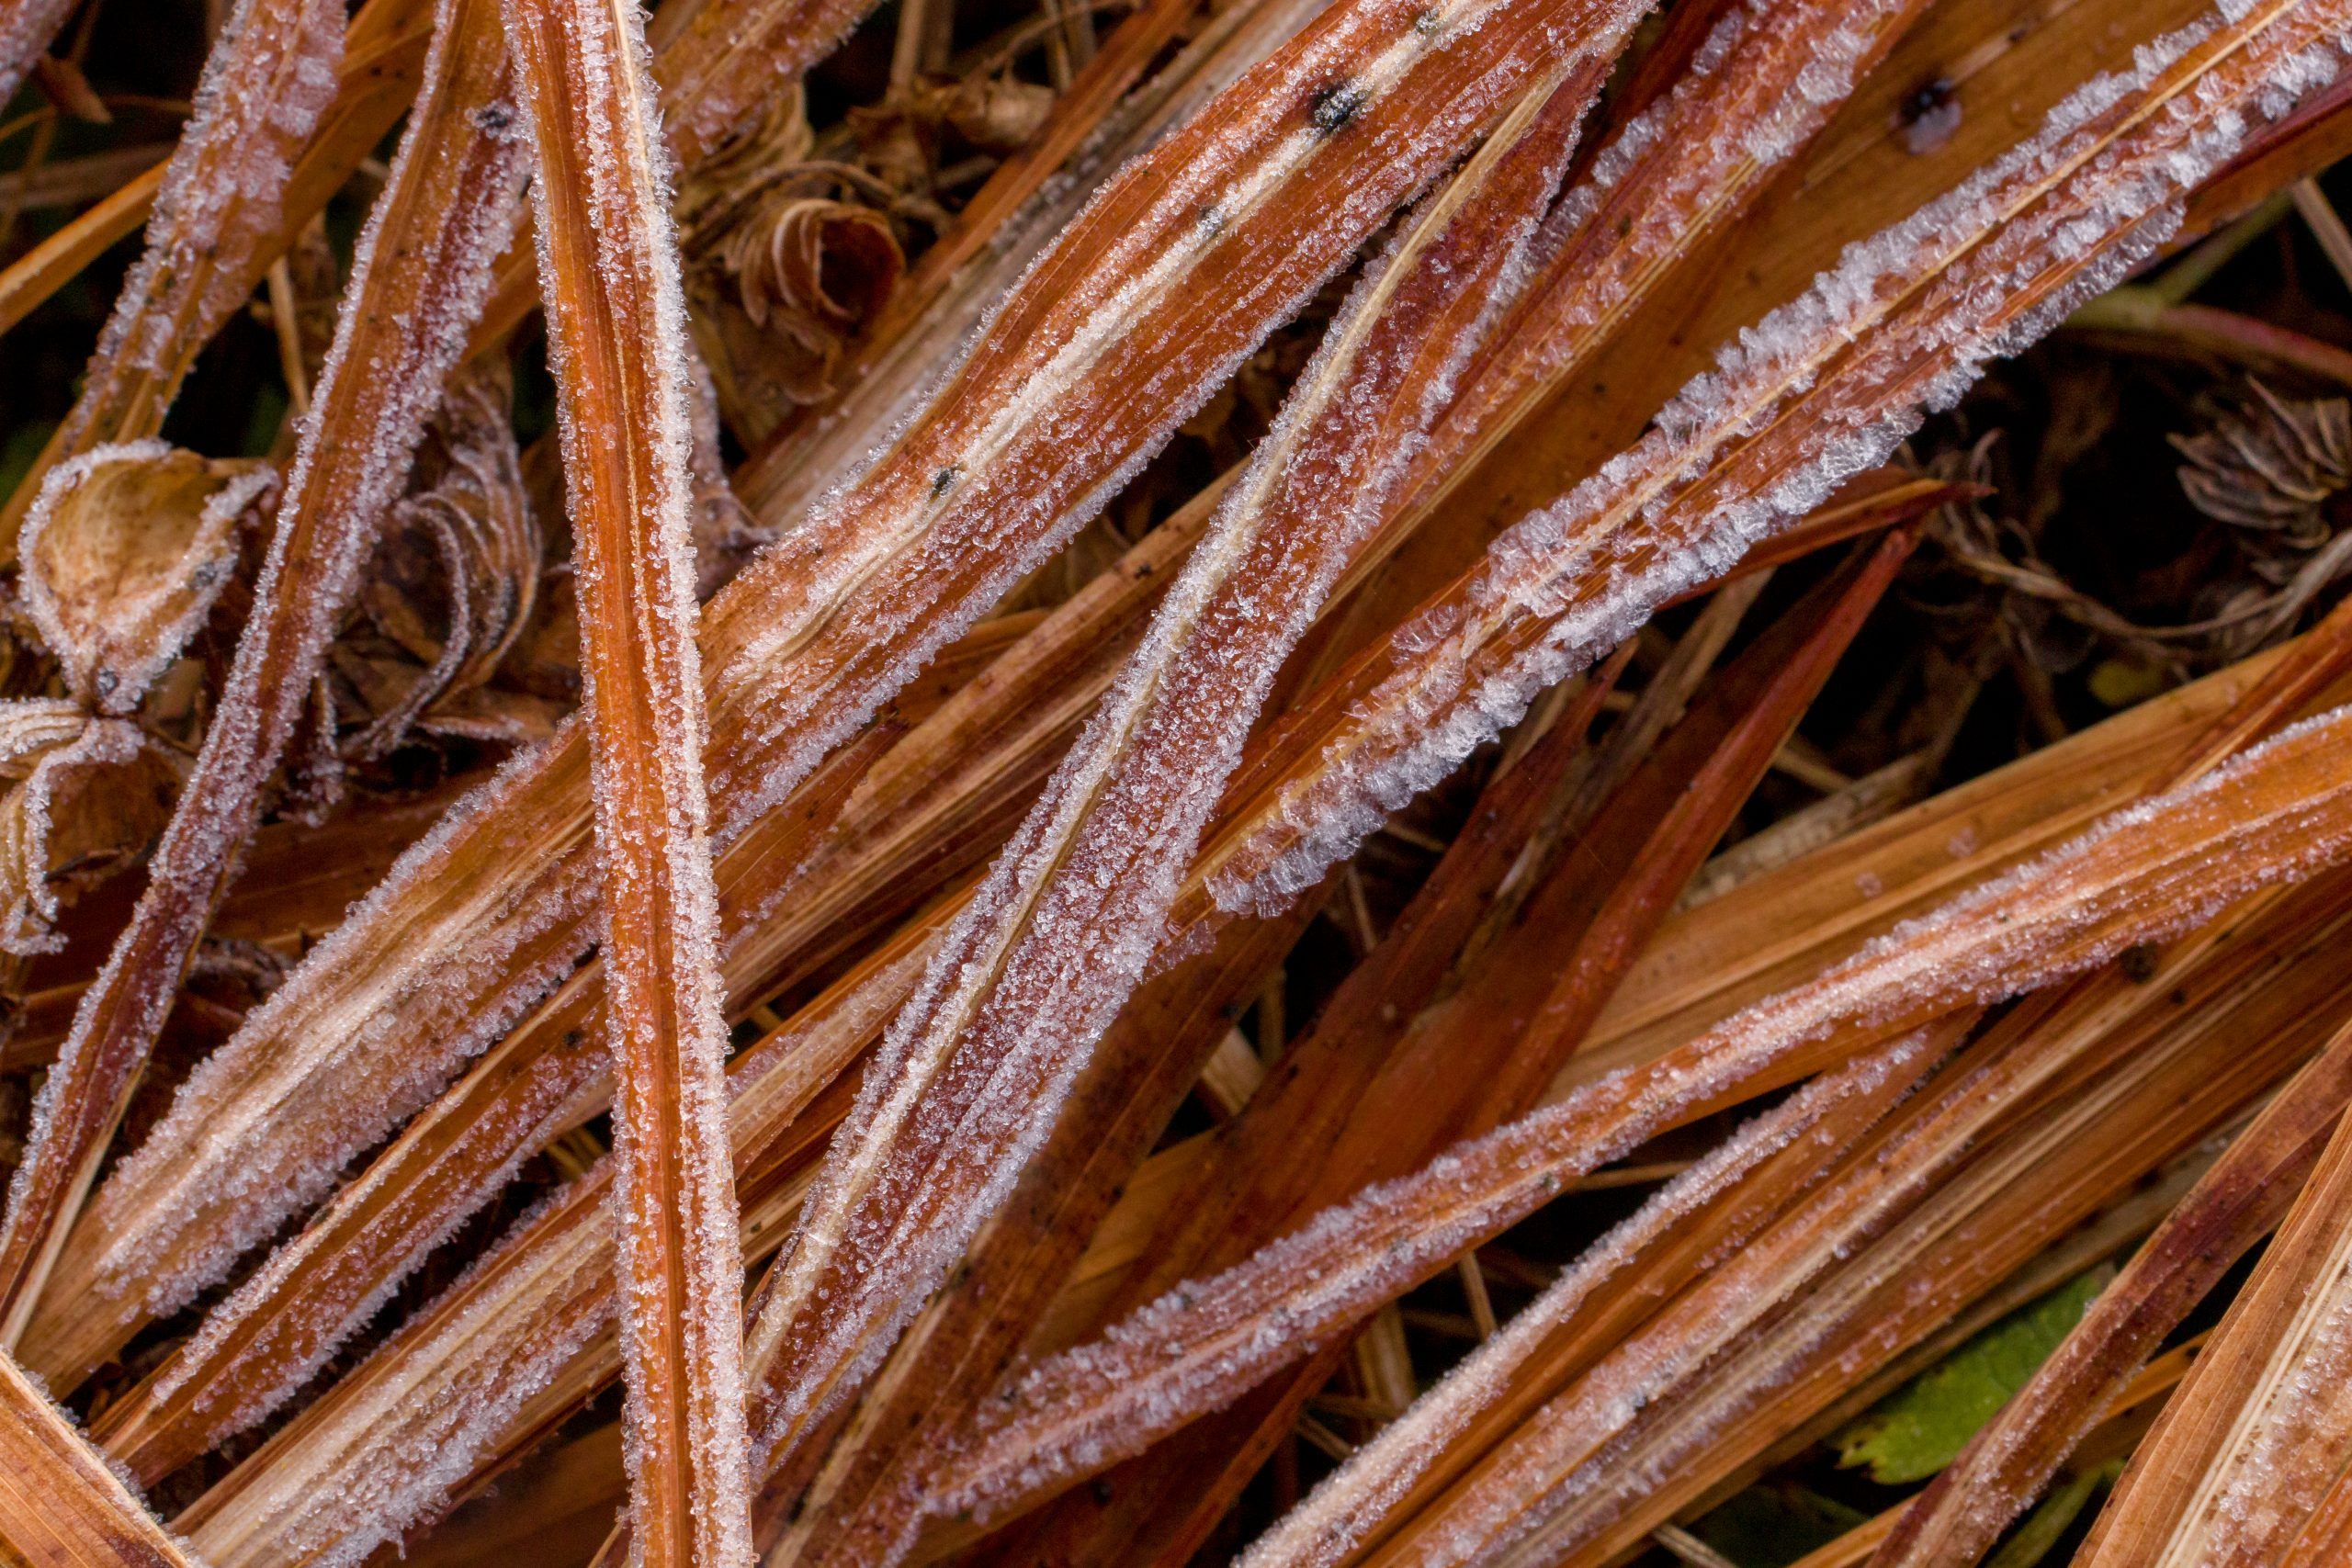 Frozen plant stems